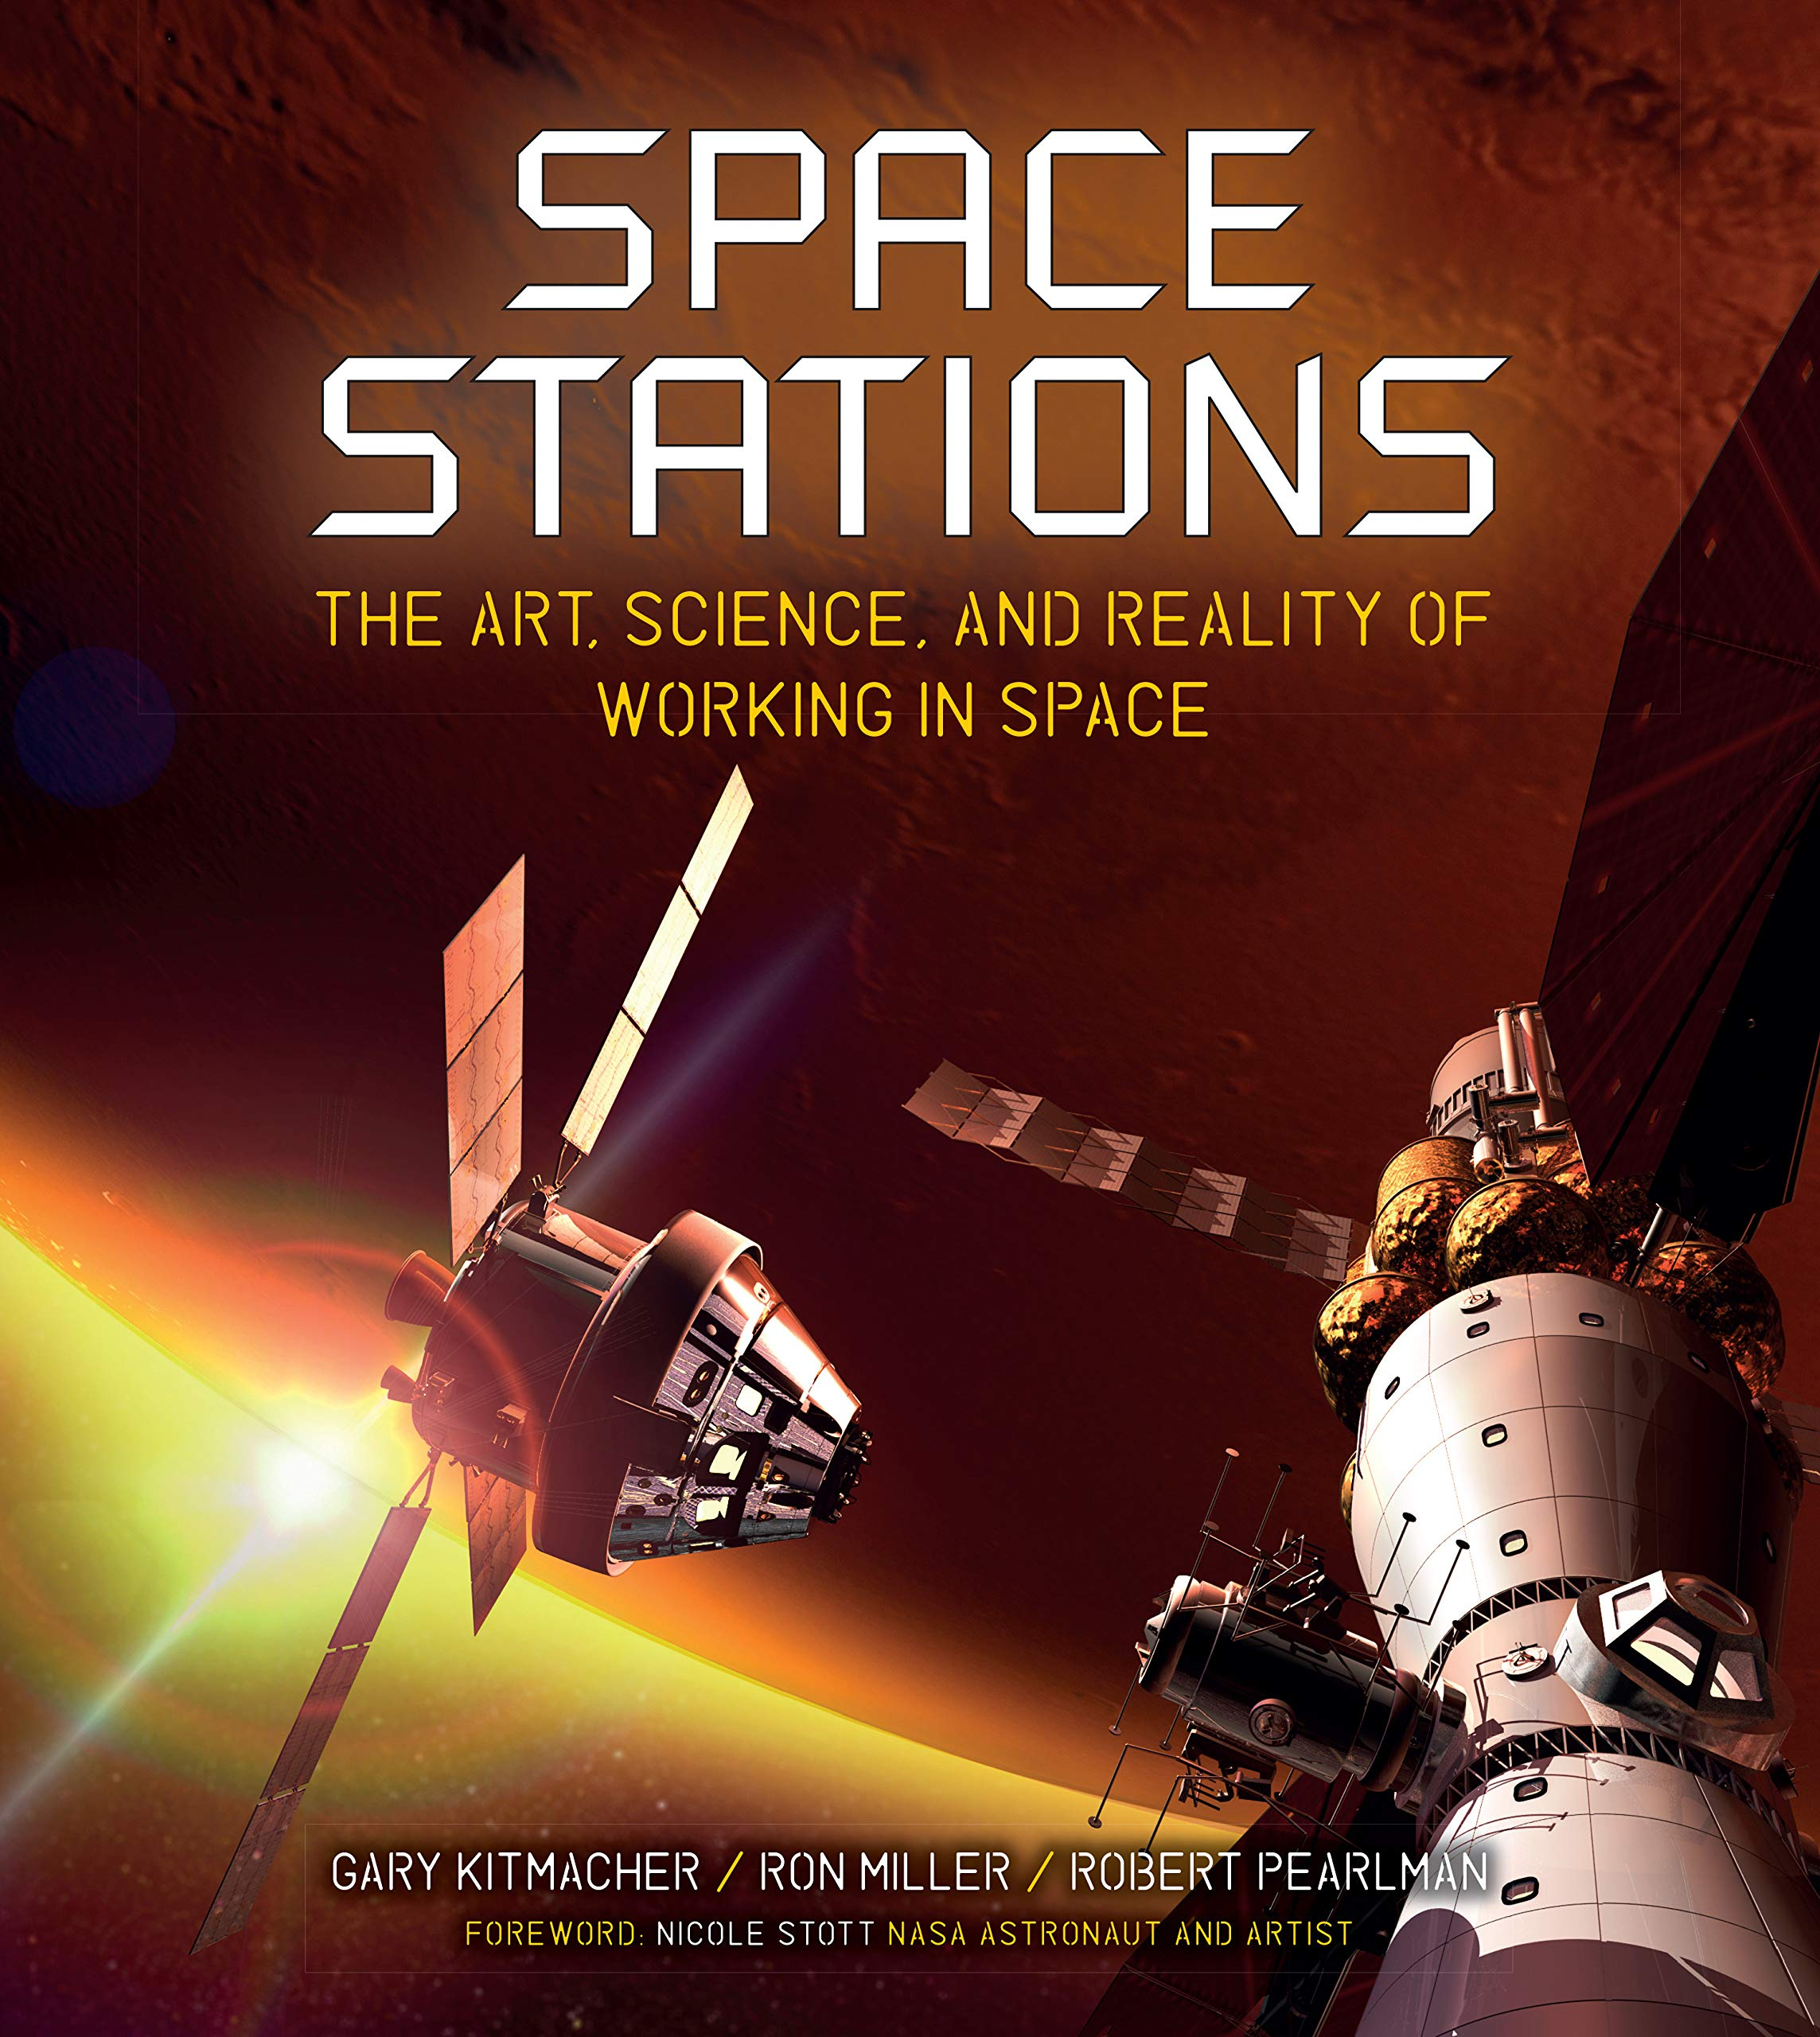 Space Stations The Art Science And Reality Of Working In Space